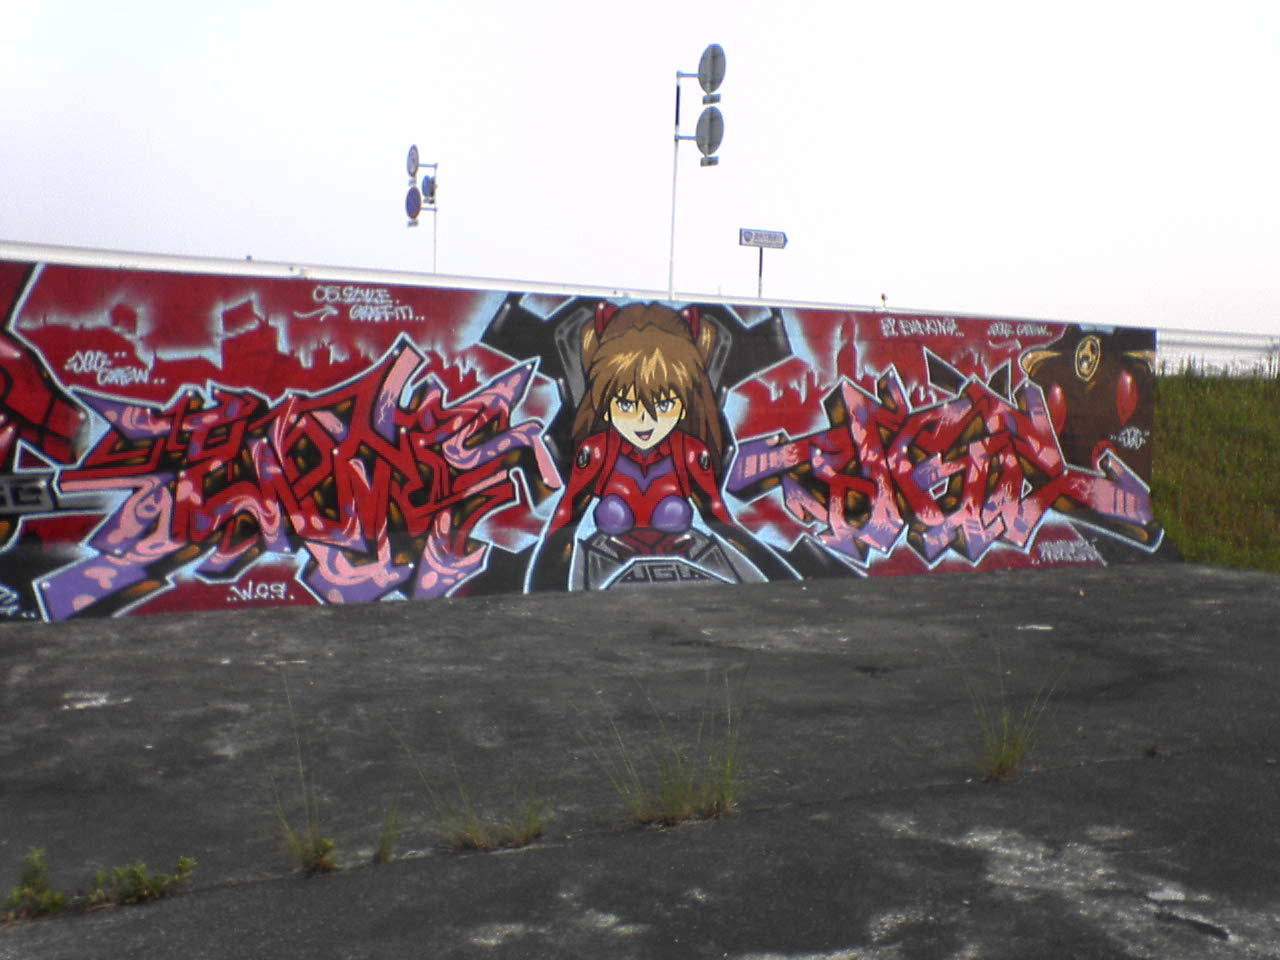 Wall with Asuka graffiti art